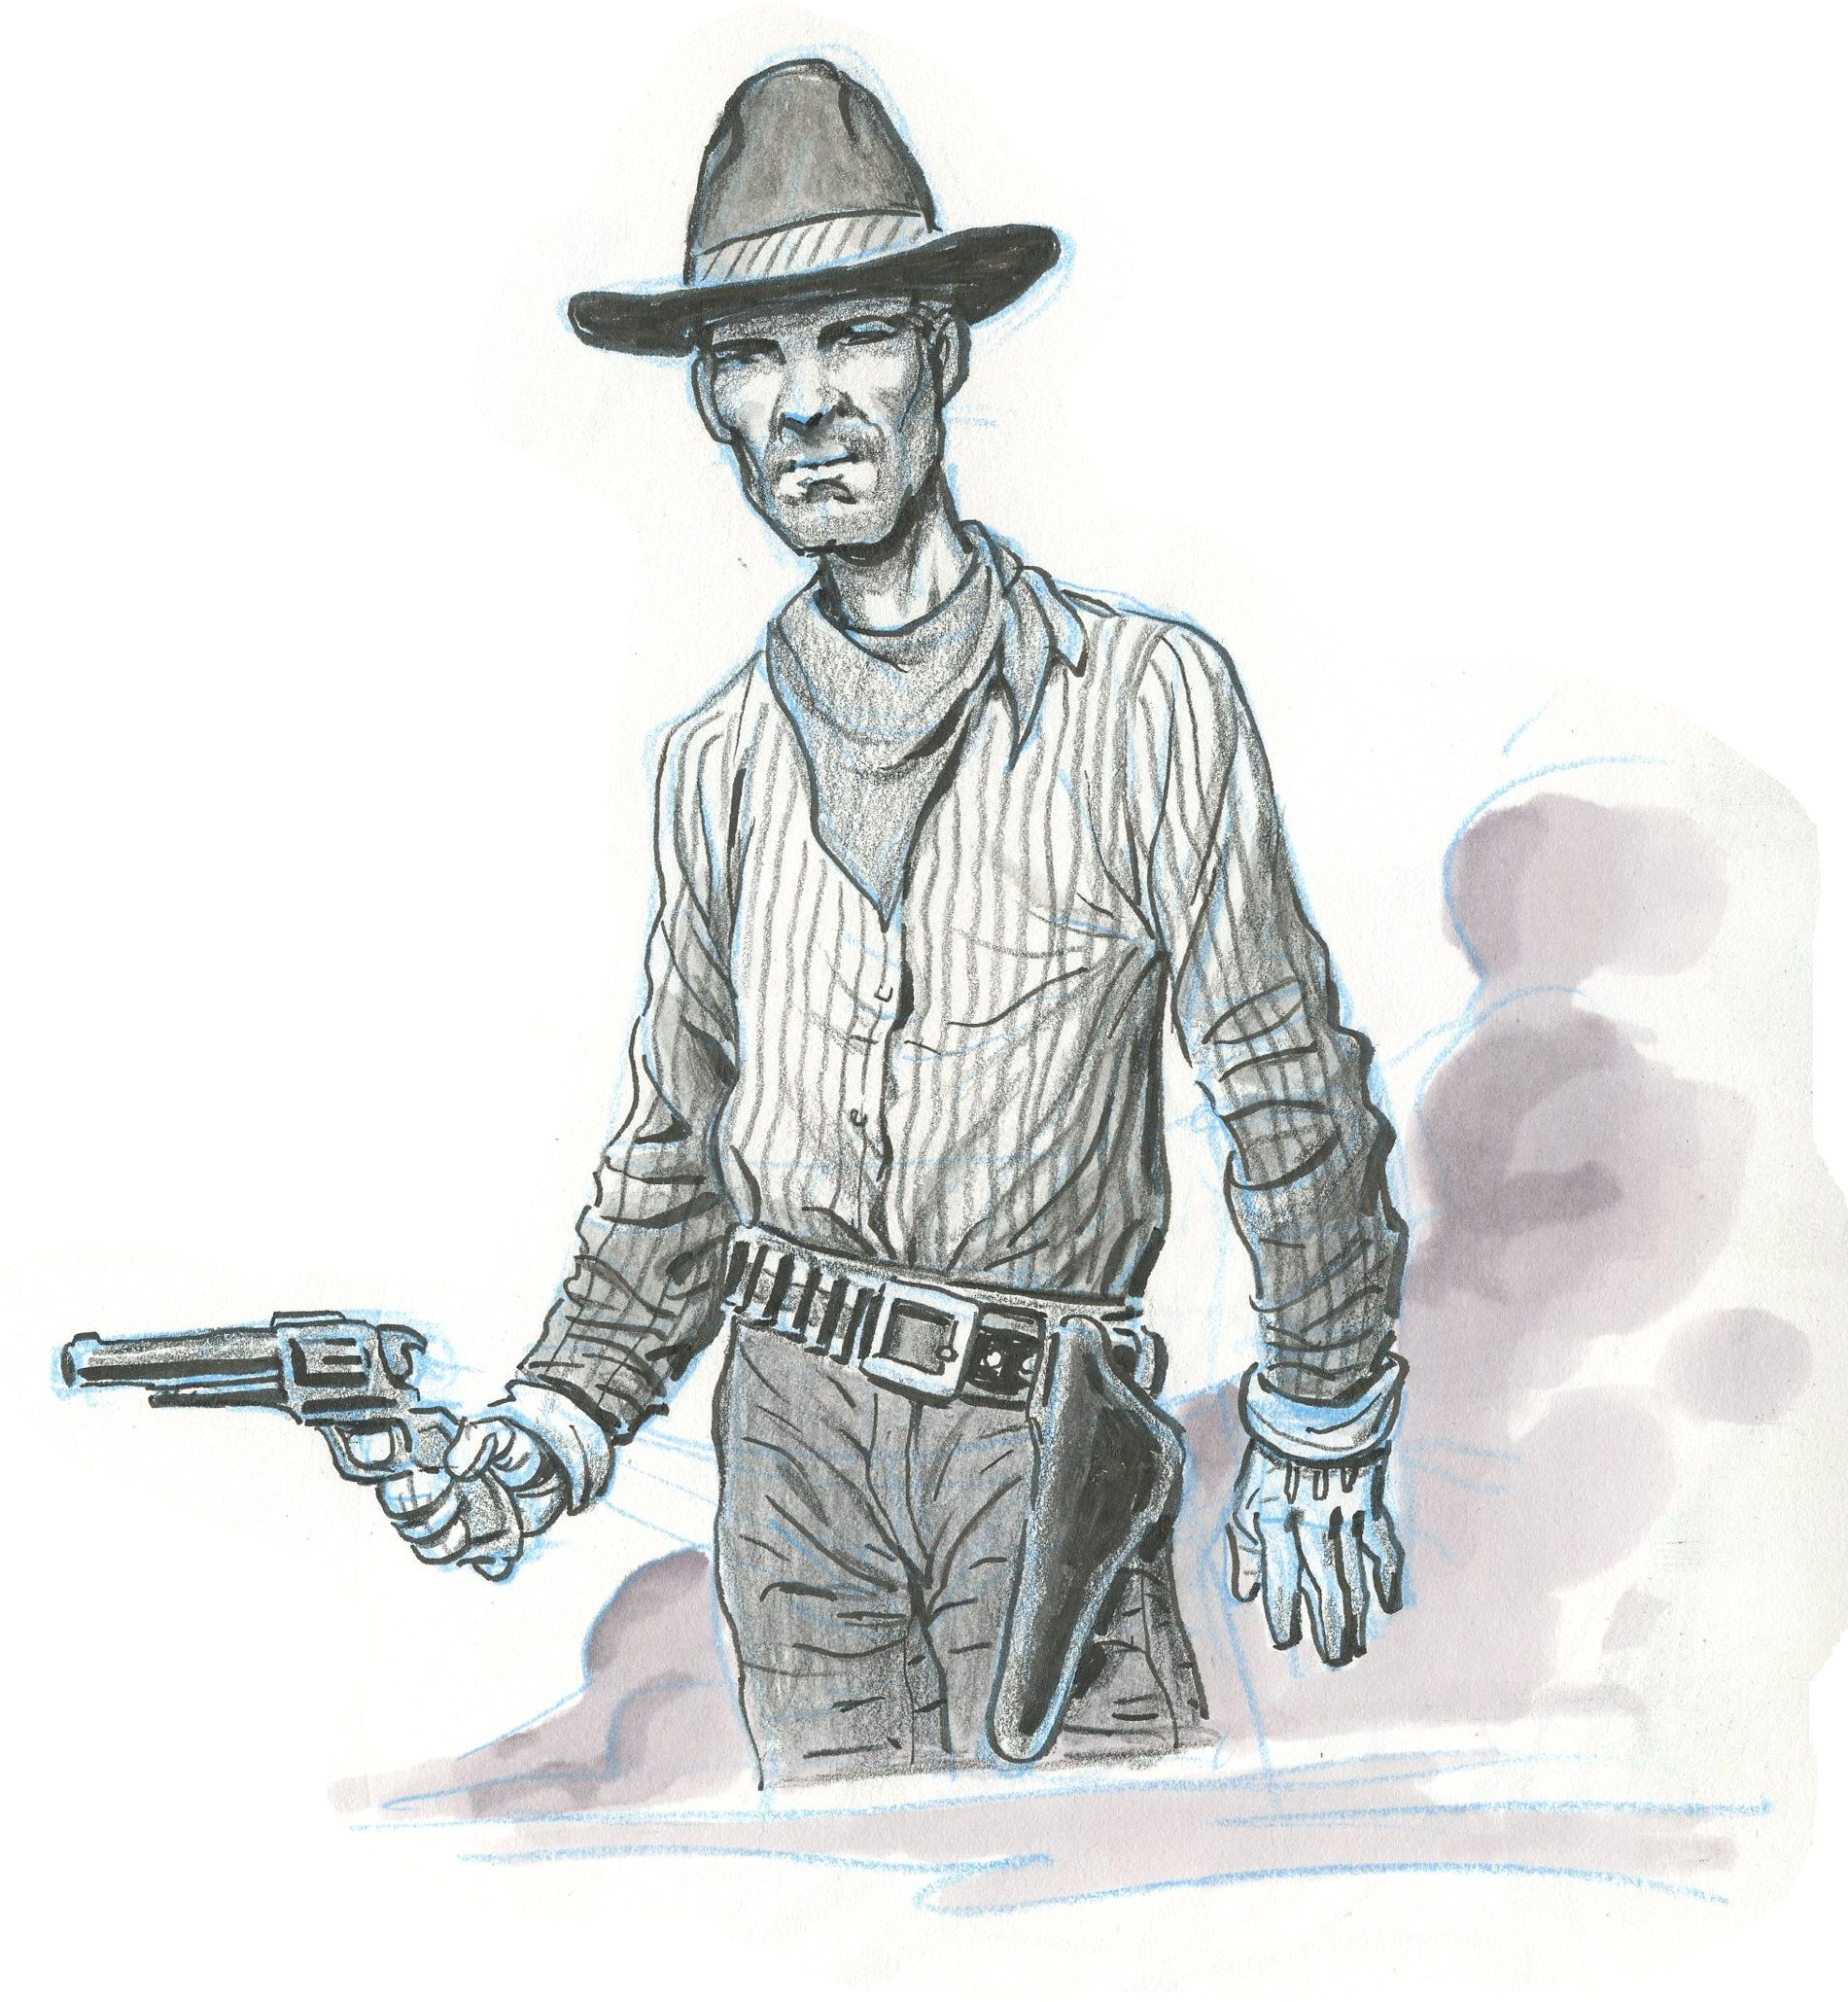 """Cyrus """"Toothpick"""" Scroggins ... he probably didn't weigh more'n 110 pounds, and barely spoke above a whisper when he was yellin', but he was damn good with a sixgun, so he never had no cause to raise his voice to any man. He just let his gun barrel do the talkin' ..."""